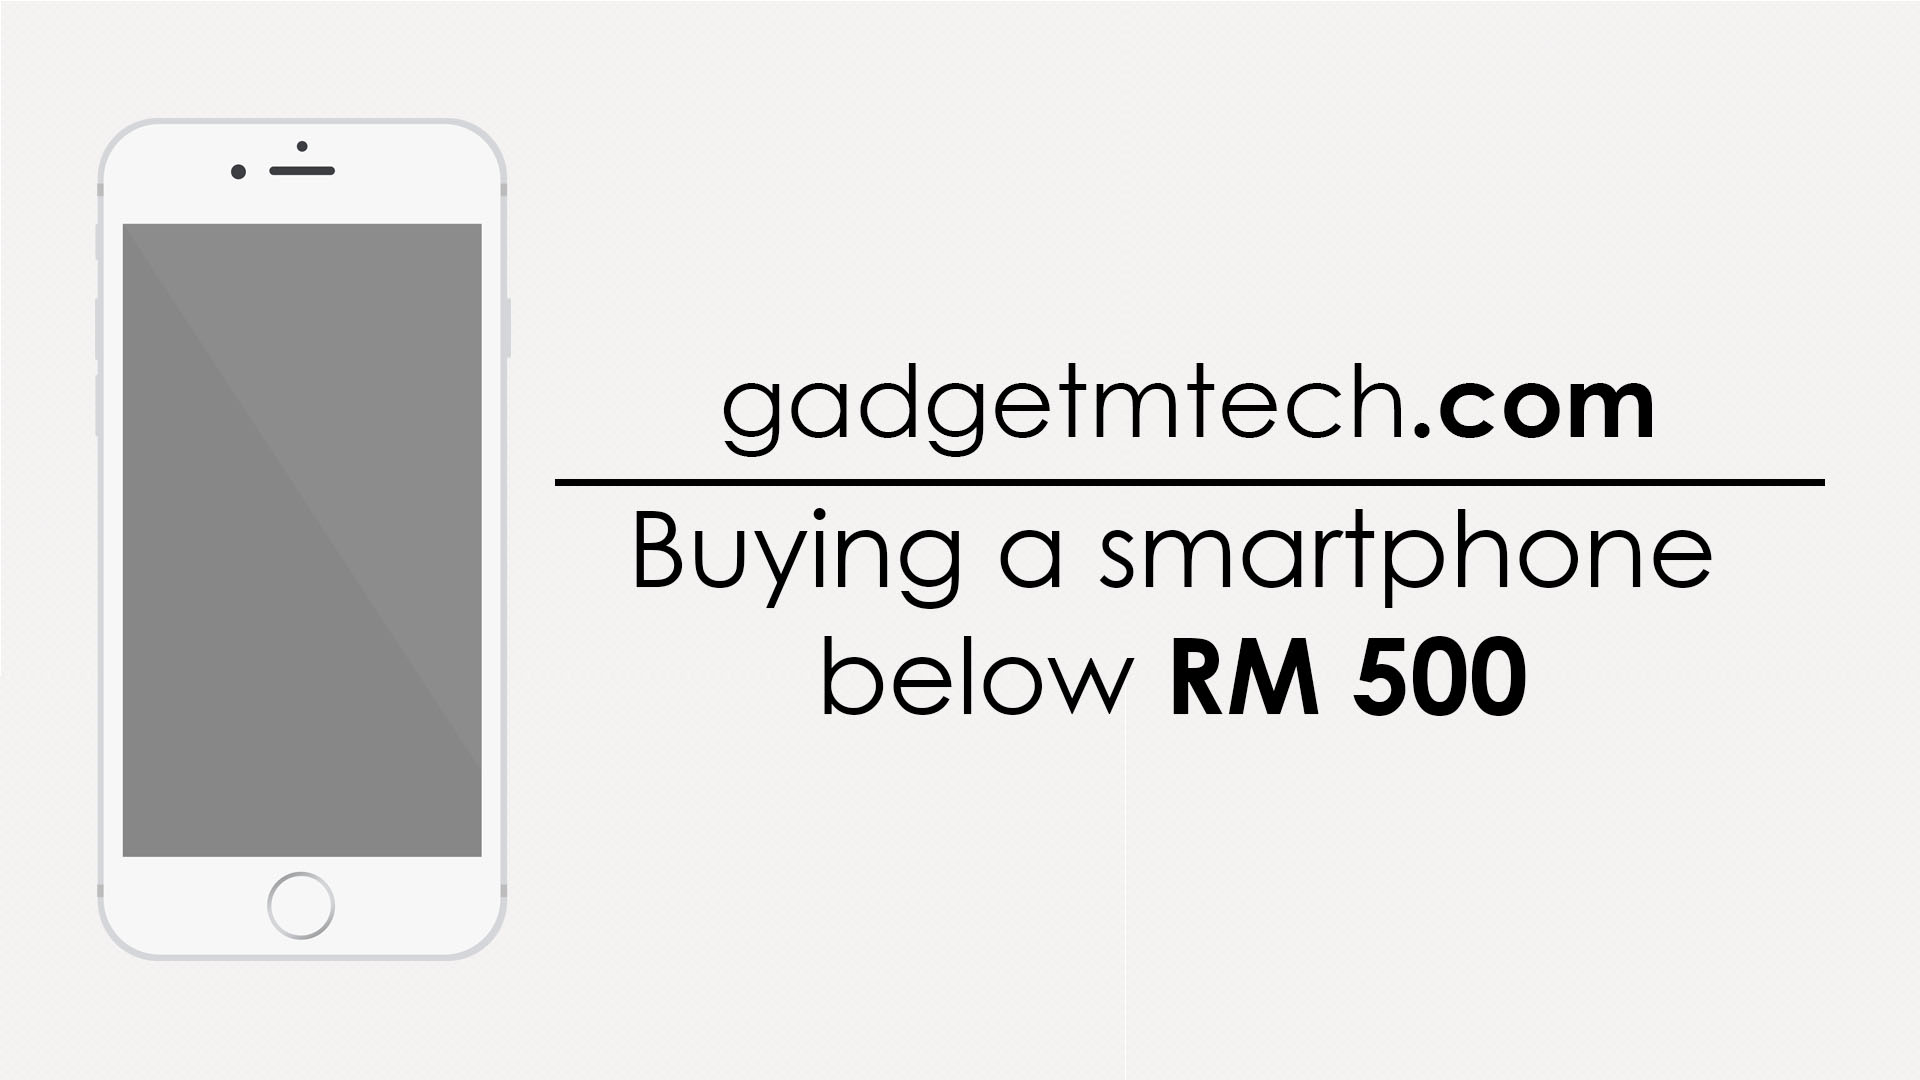 Buying a smartphone below RM 500